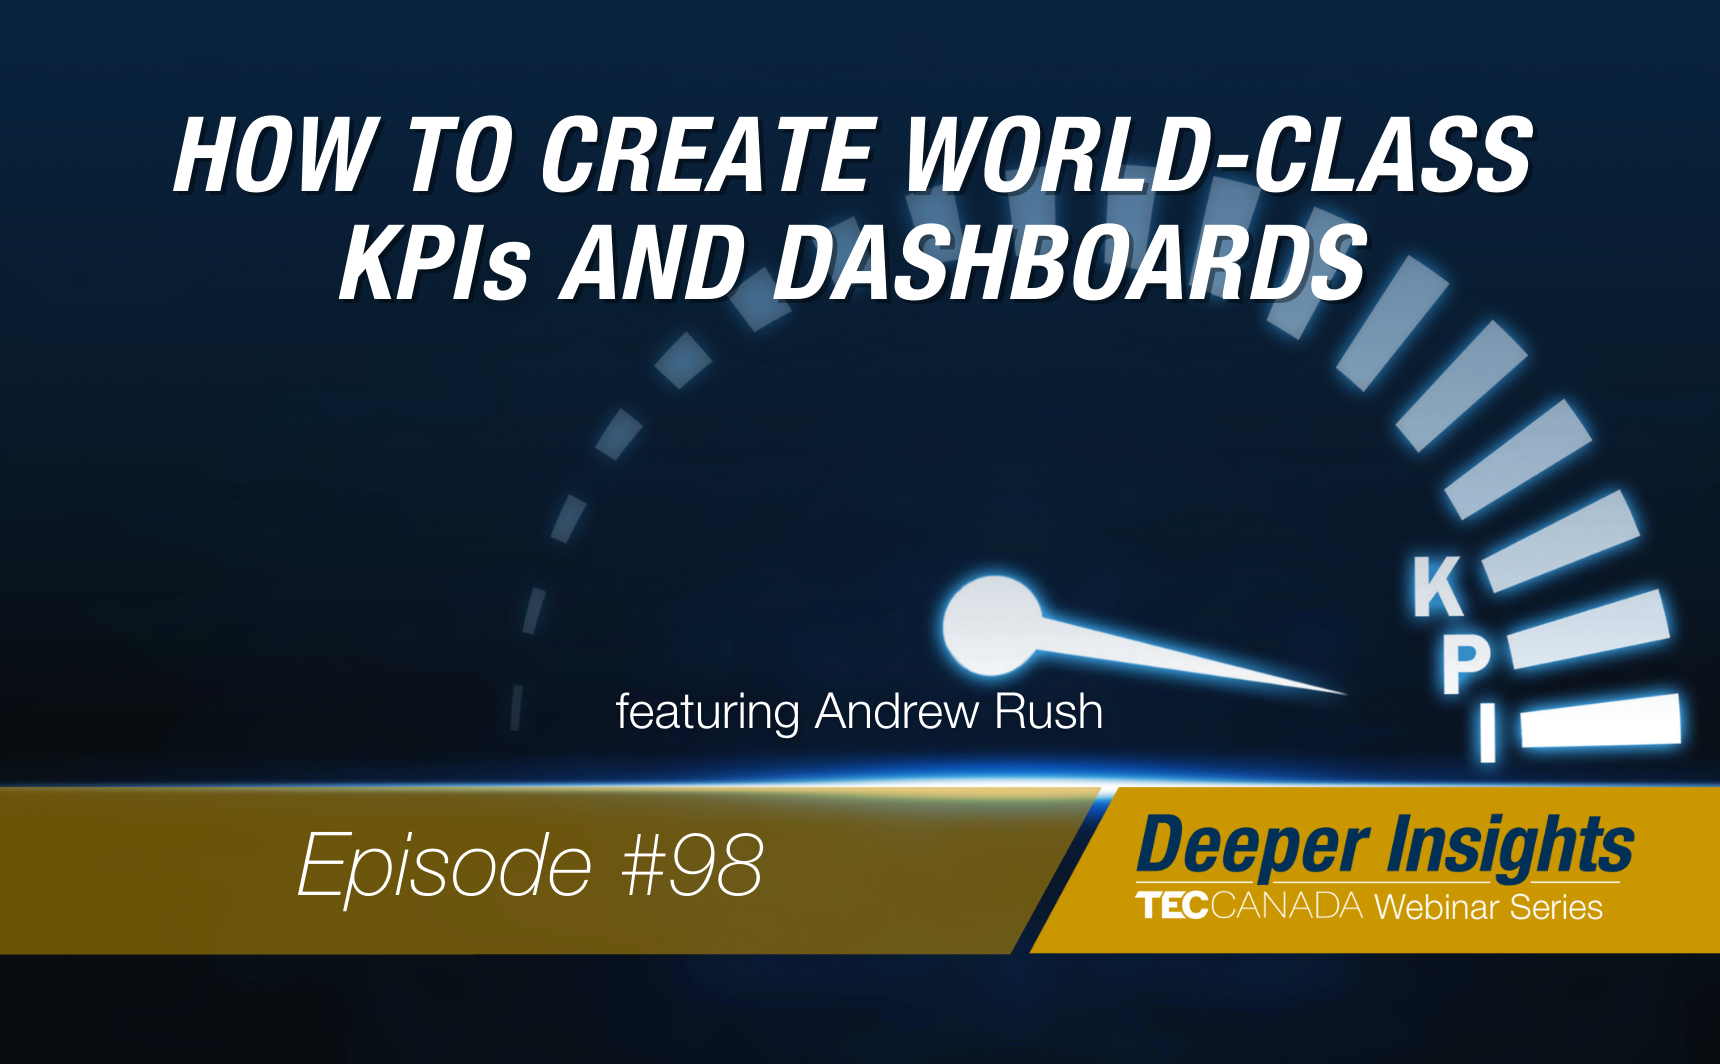 How to Build World-Class KPIs and Dashboards